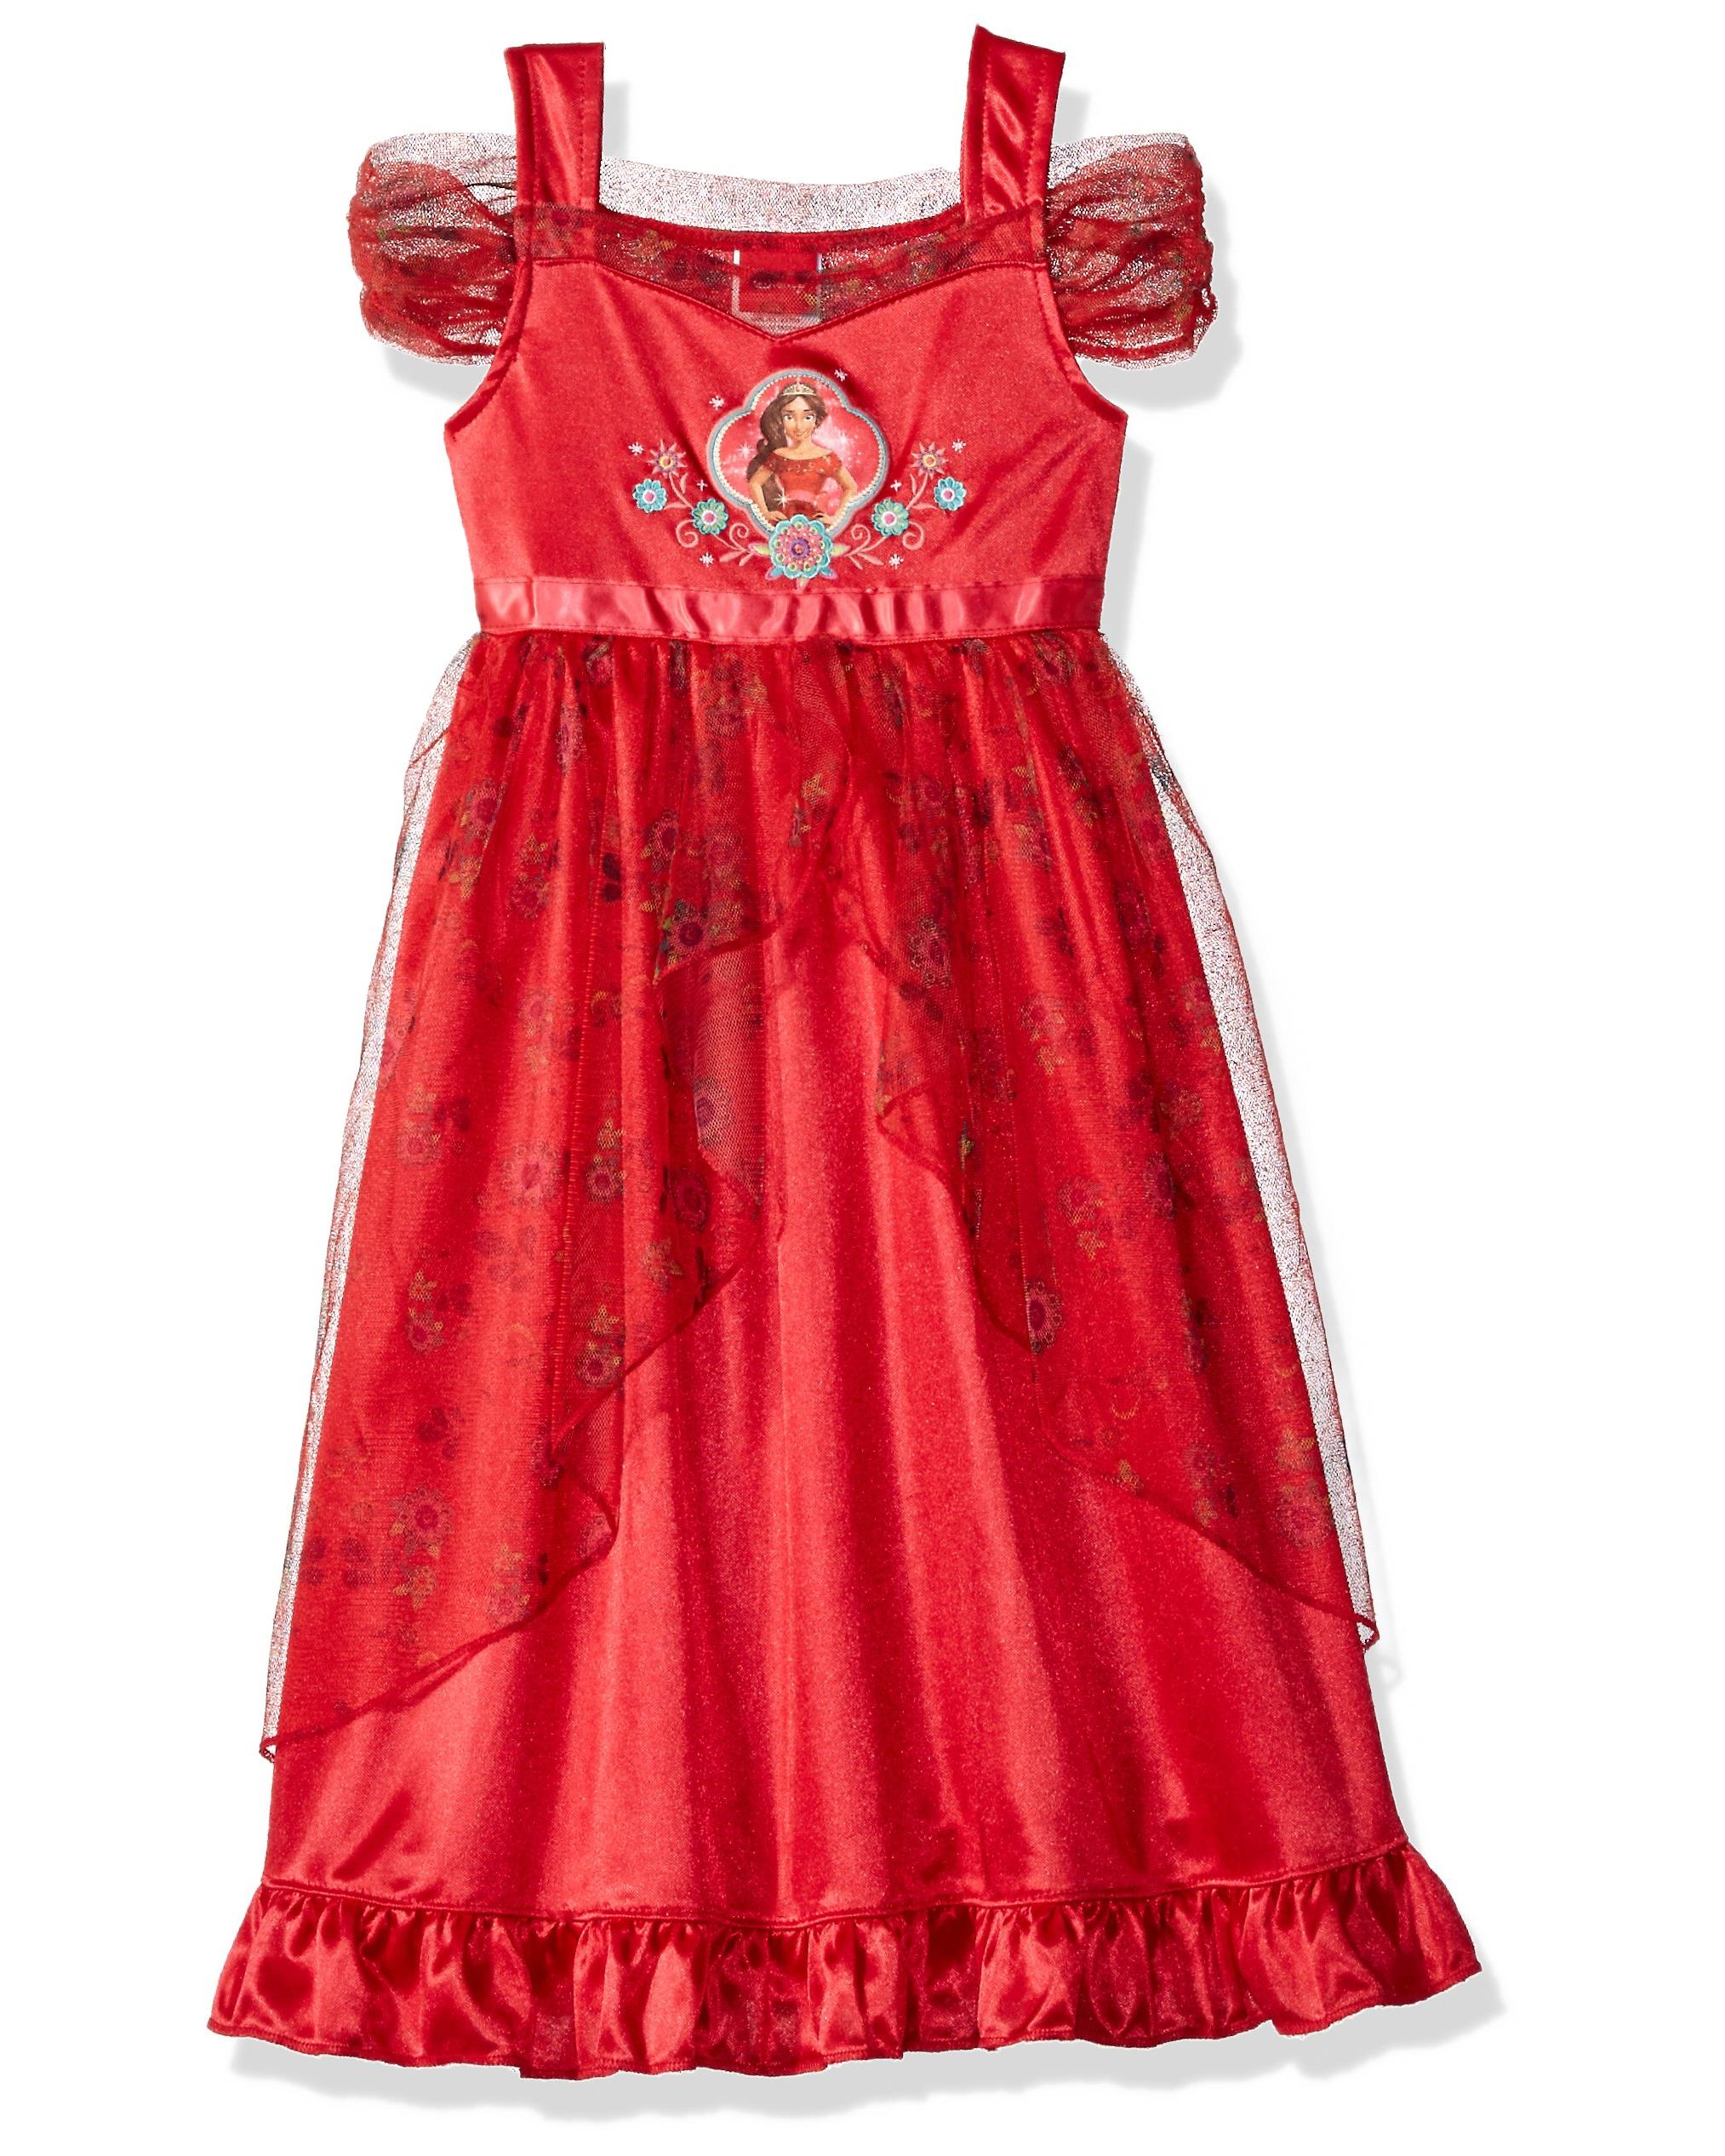 Elena of Avalor Nightgown for Girls Red